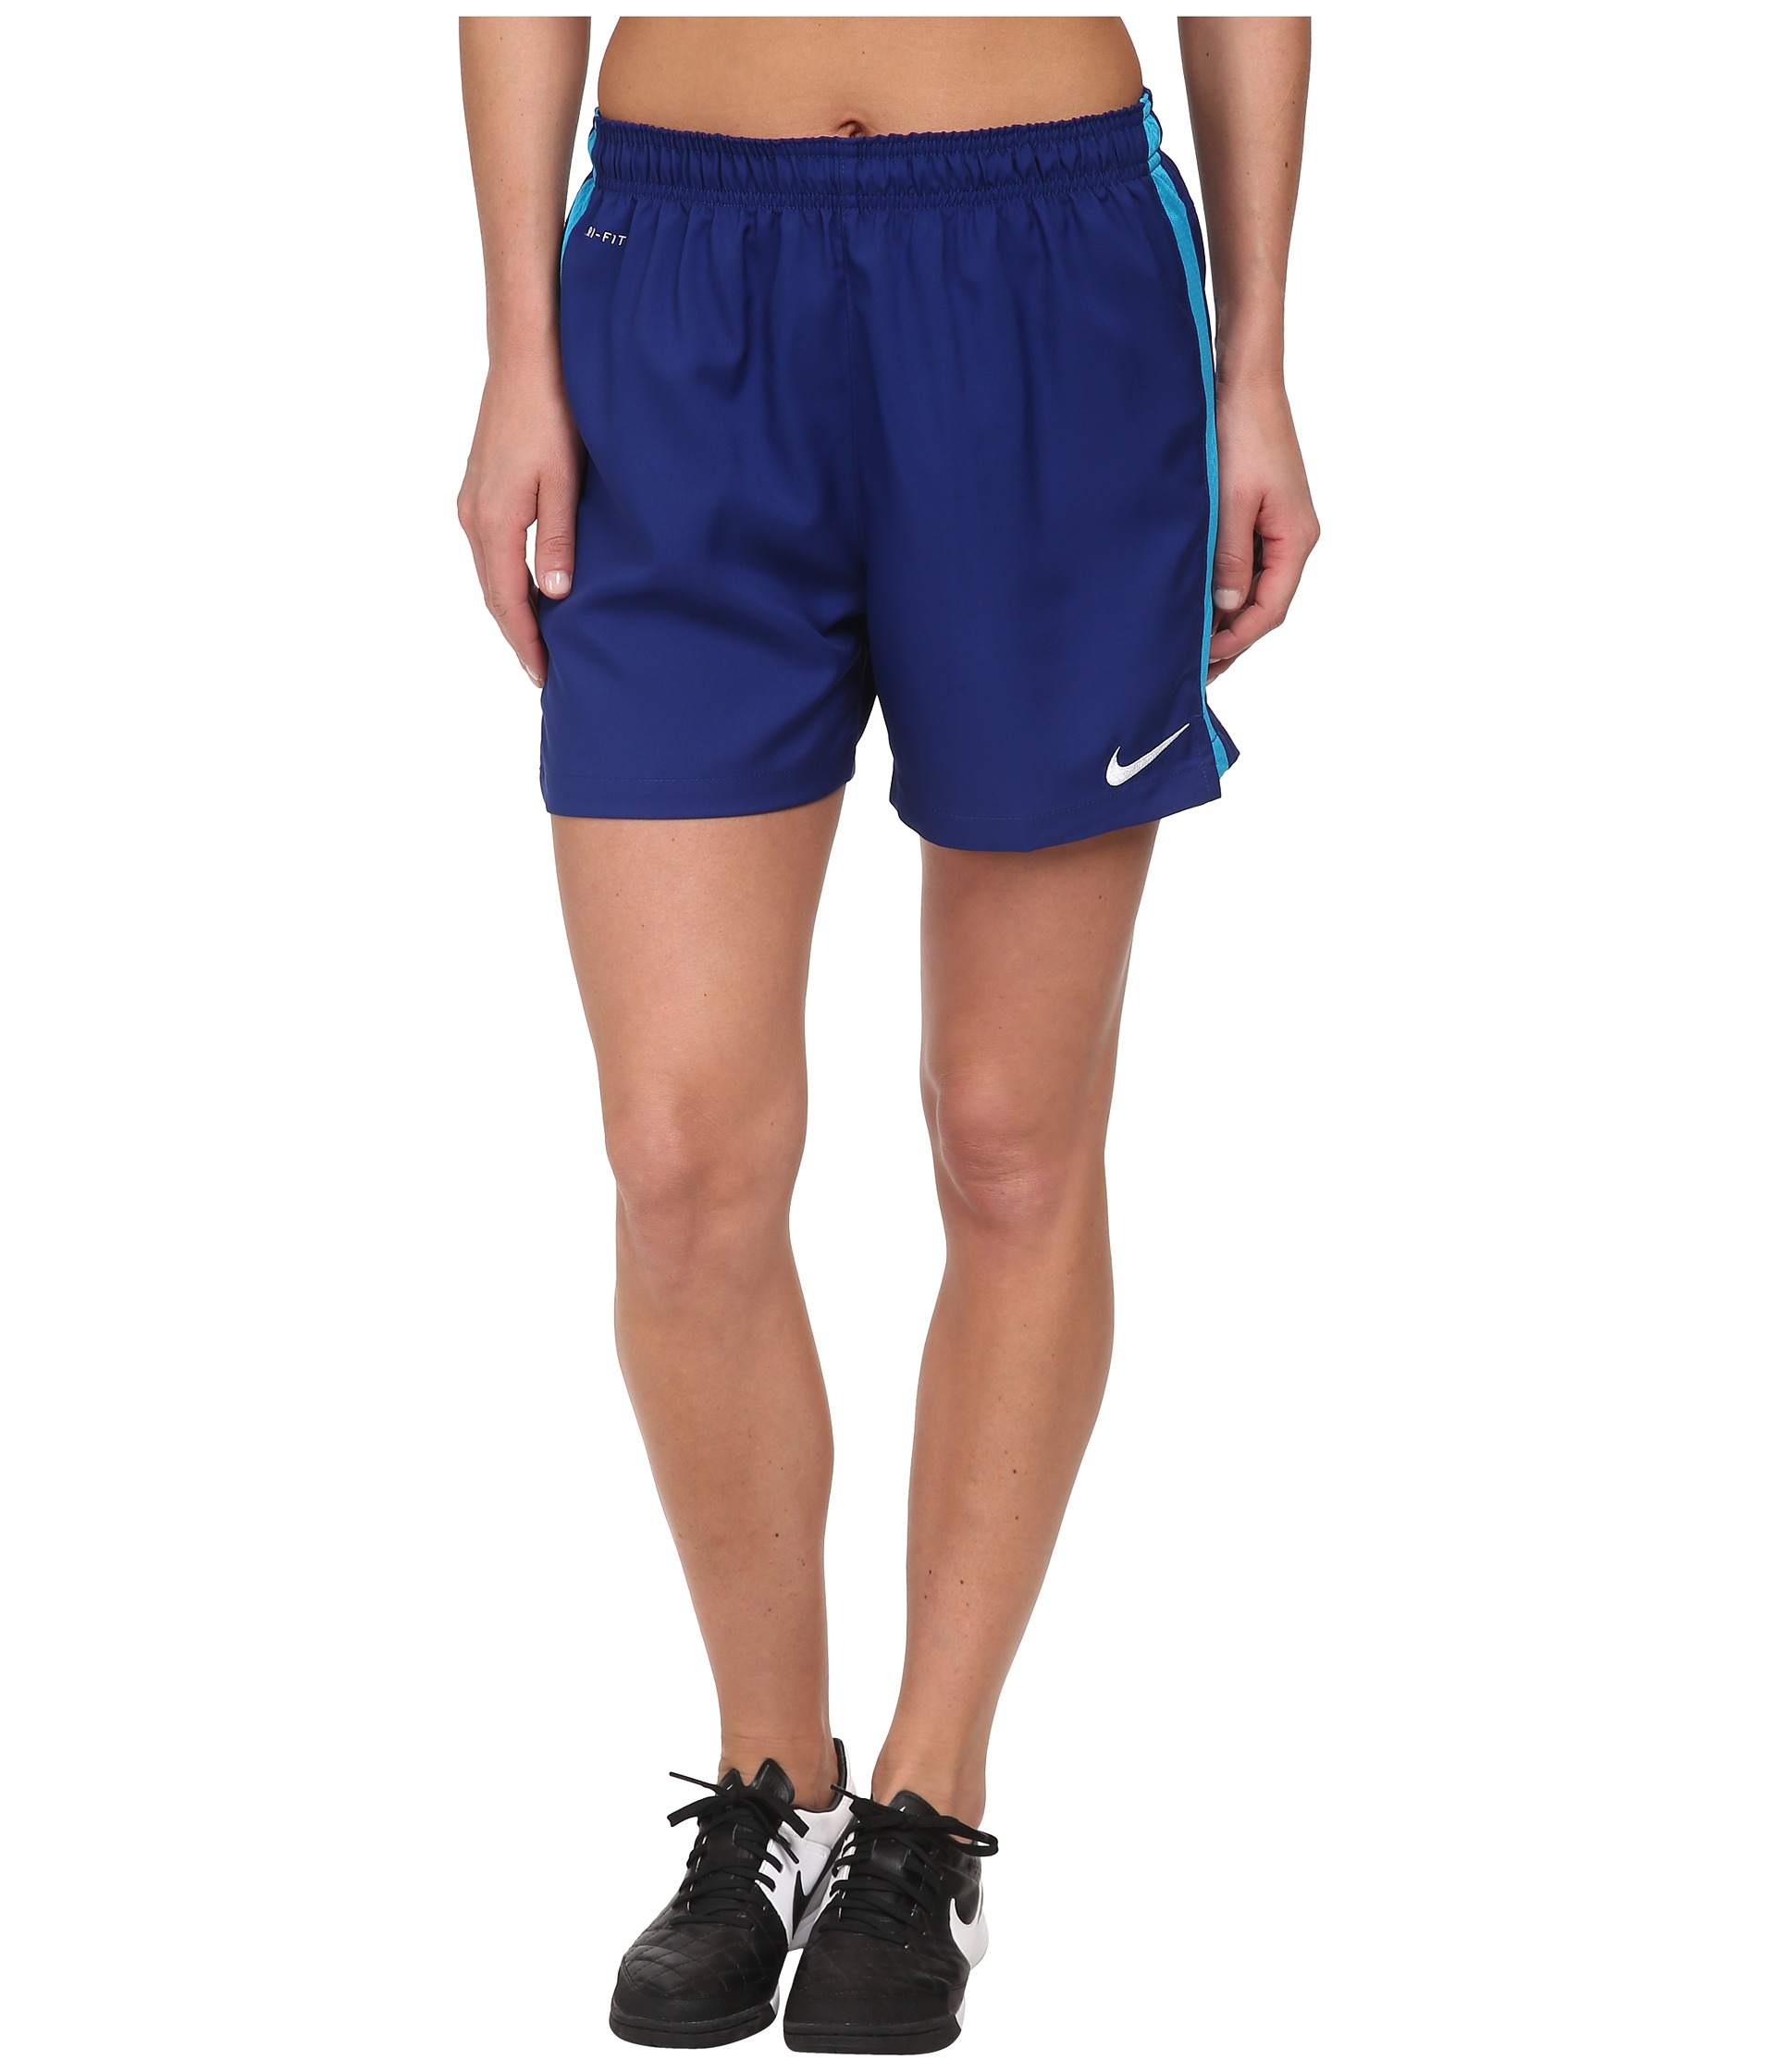 Lyst - Nike Dri-Fit™ Squad Woven Short in Blue beaa2a6e45a6d